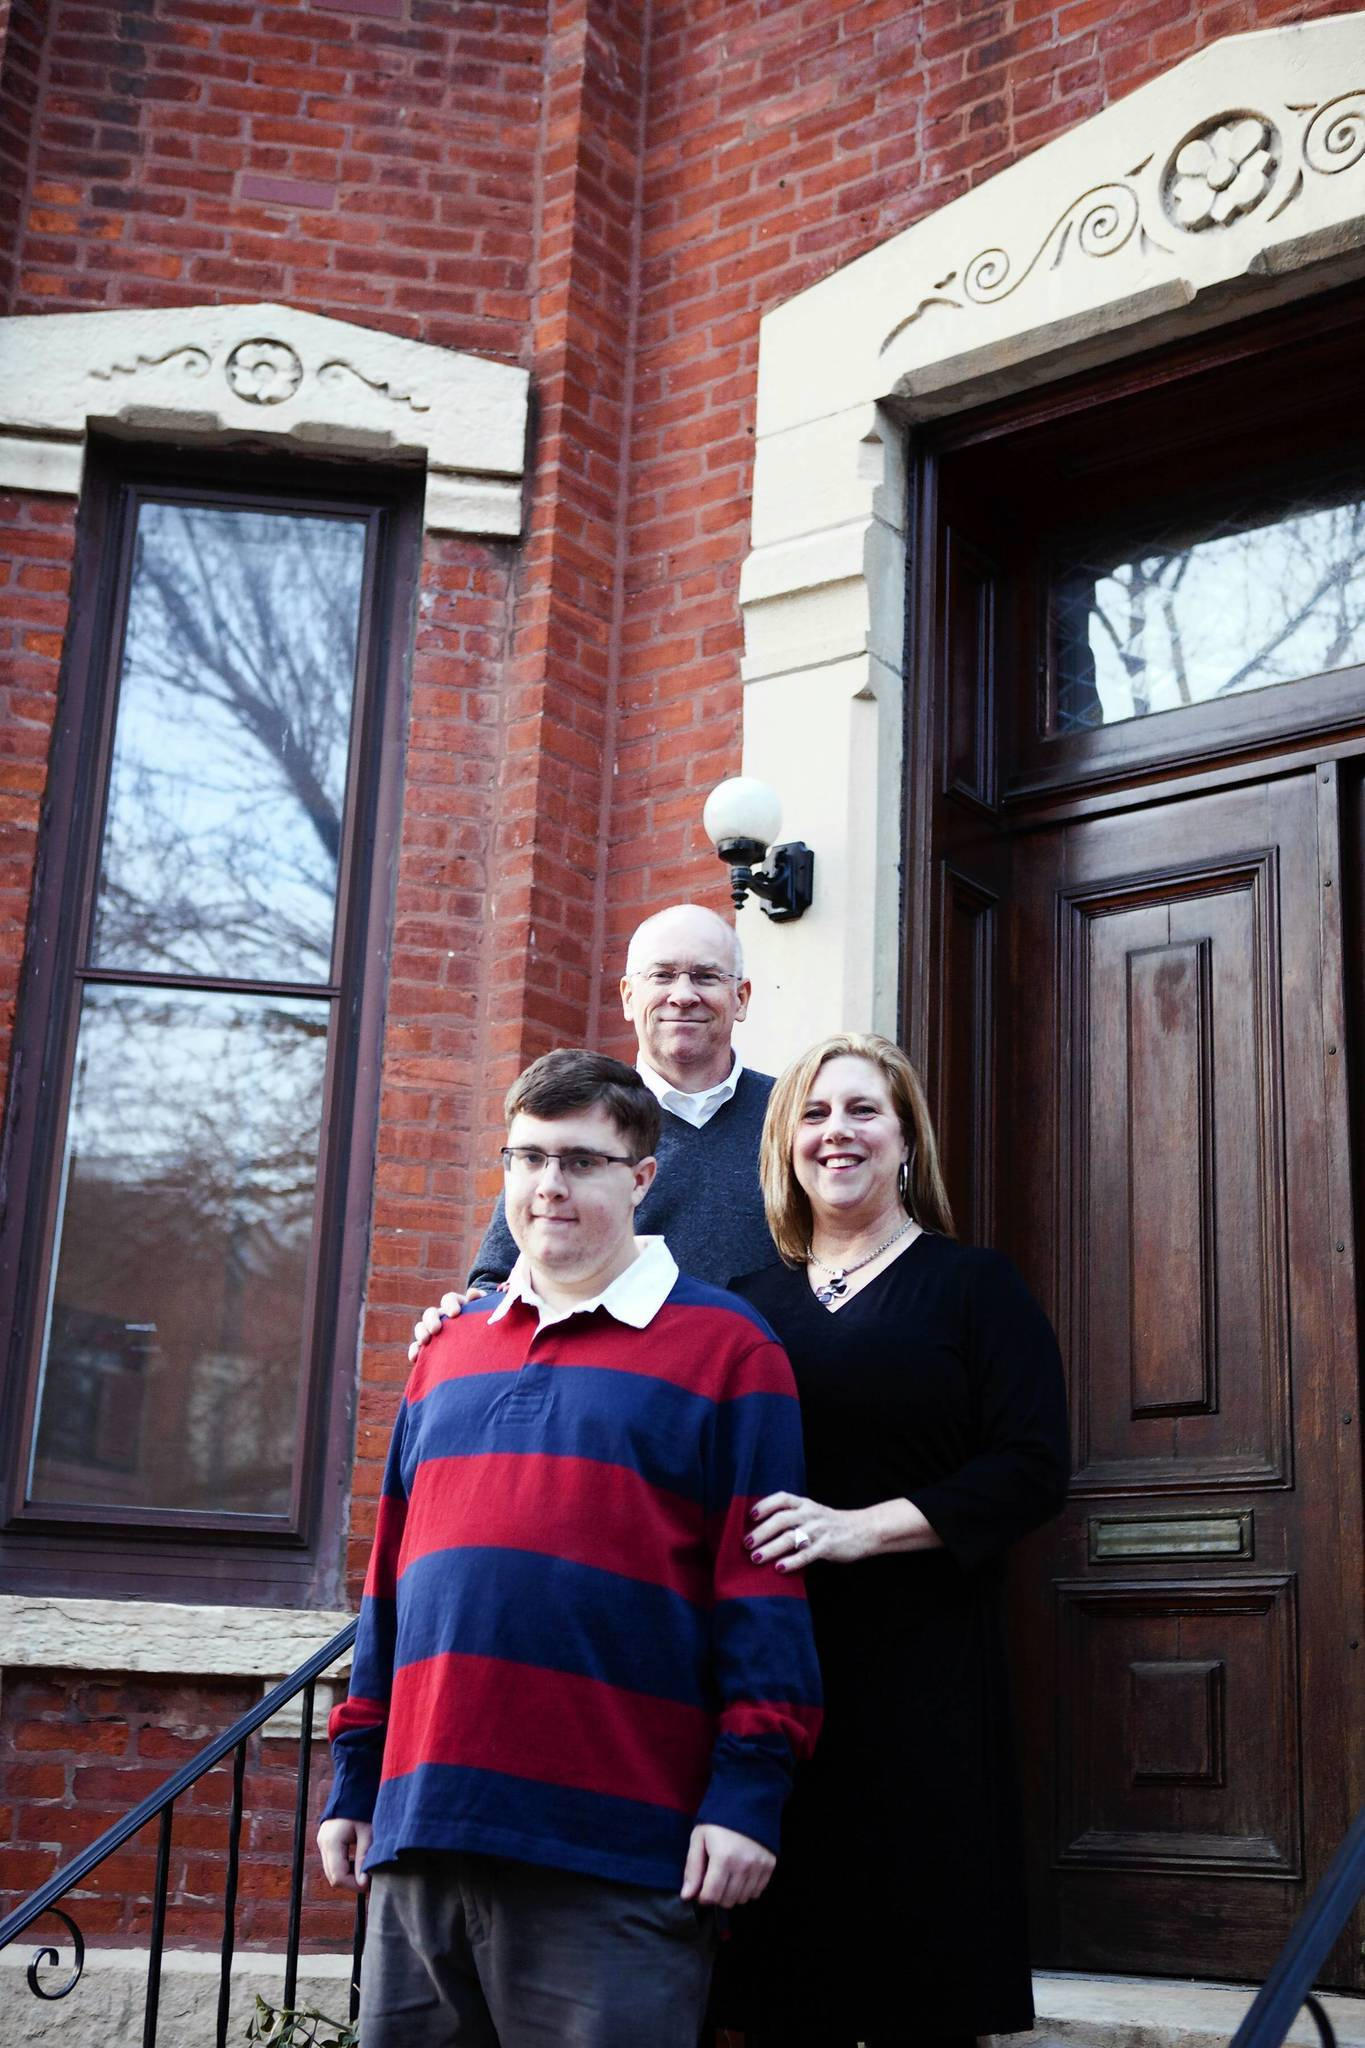 Julie and Michael Tracy started a foundation to help their 21-year-old son, John, and others who afflicted with autism and a mental disorder. The foundation has purchased a four-bedroom Victorian home, in background, near the University of Illinois at Chicago campus to house adults with autism. It is to open in the spring.